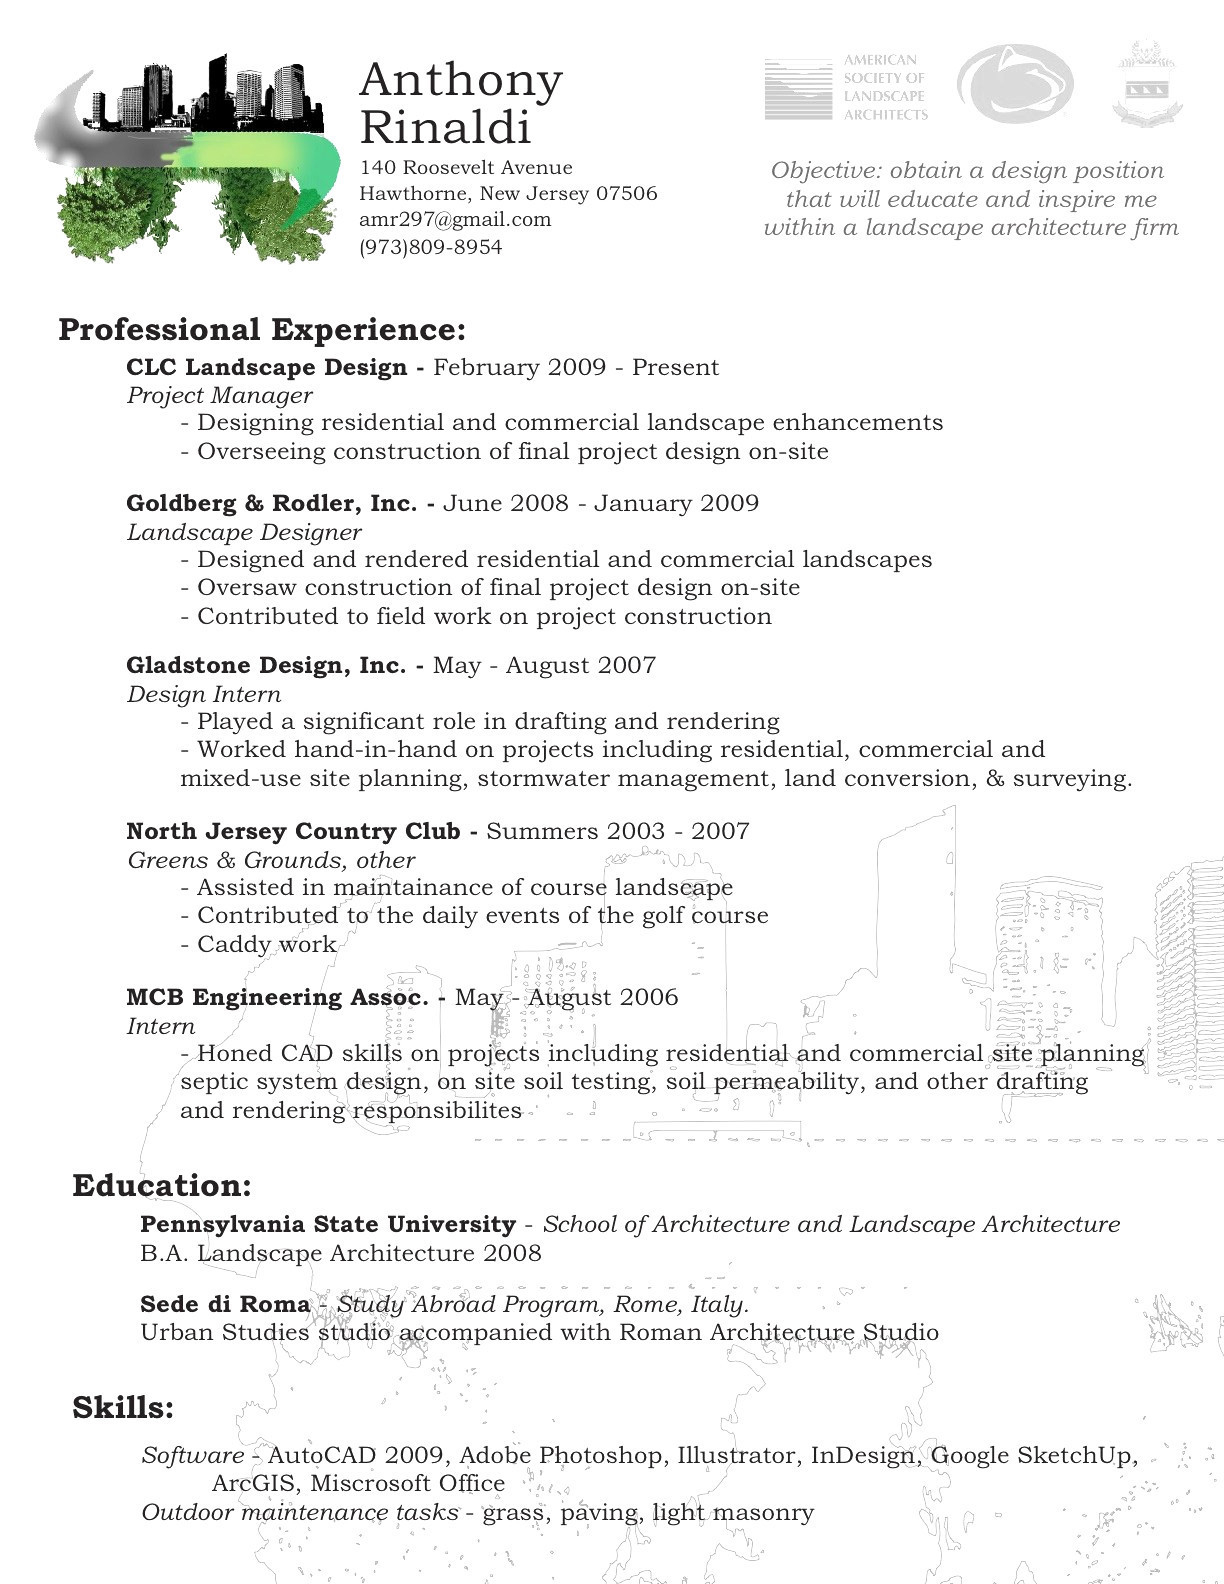 Landscaping Skills for Resume - Beautiful Clc Landscape Design Landscape Design Ideas